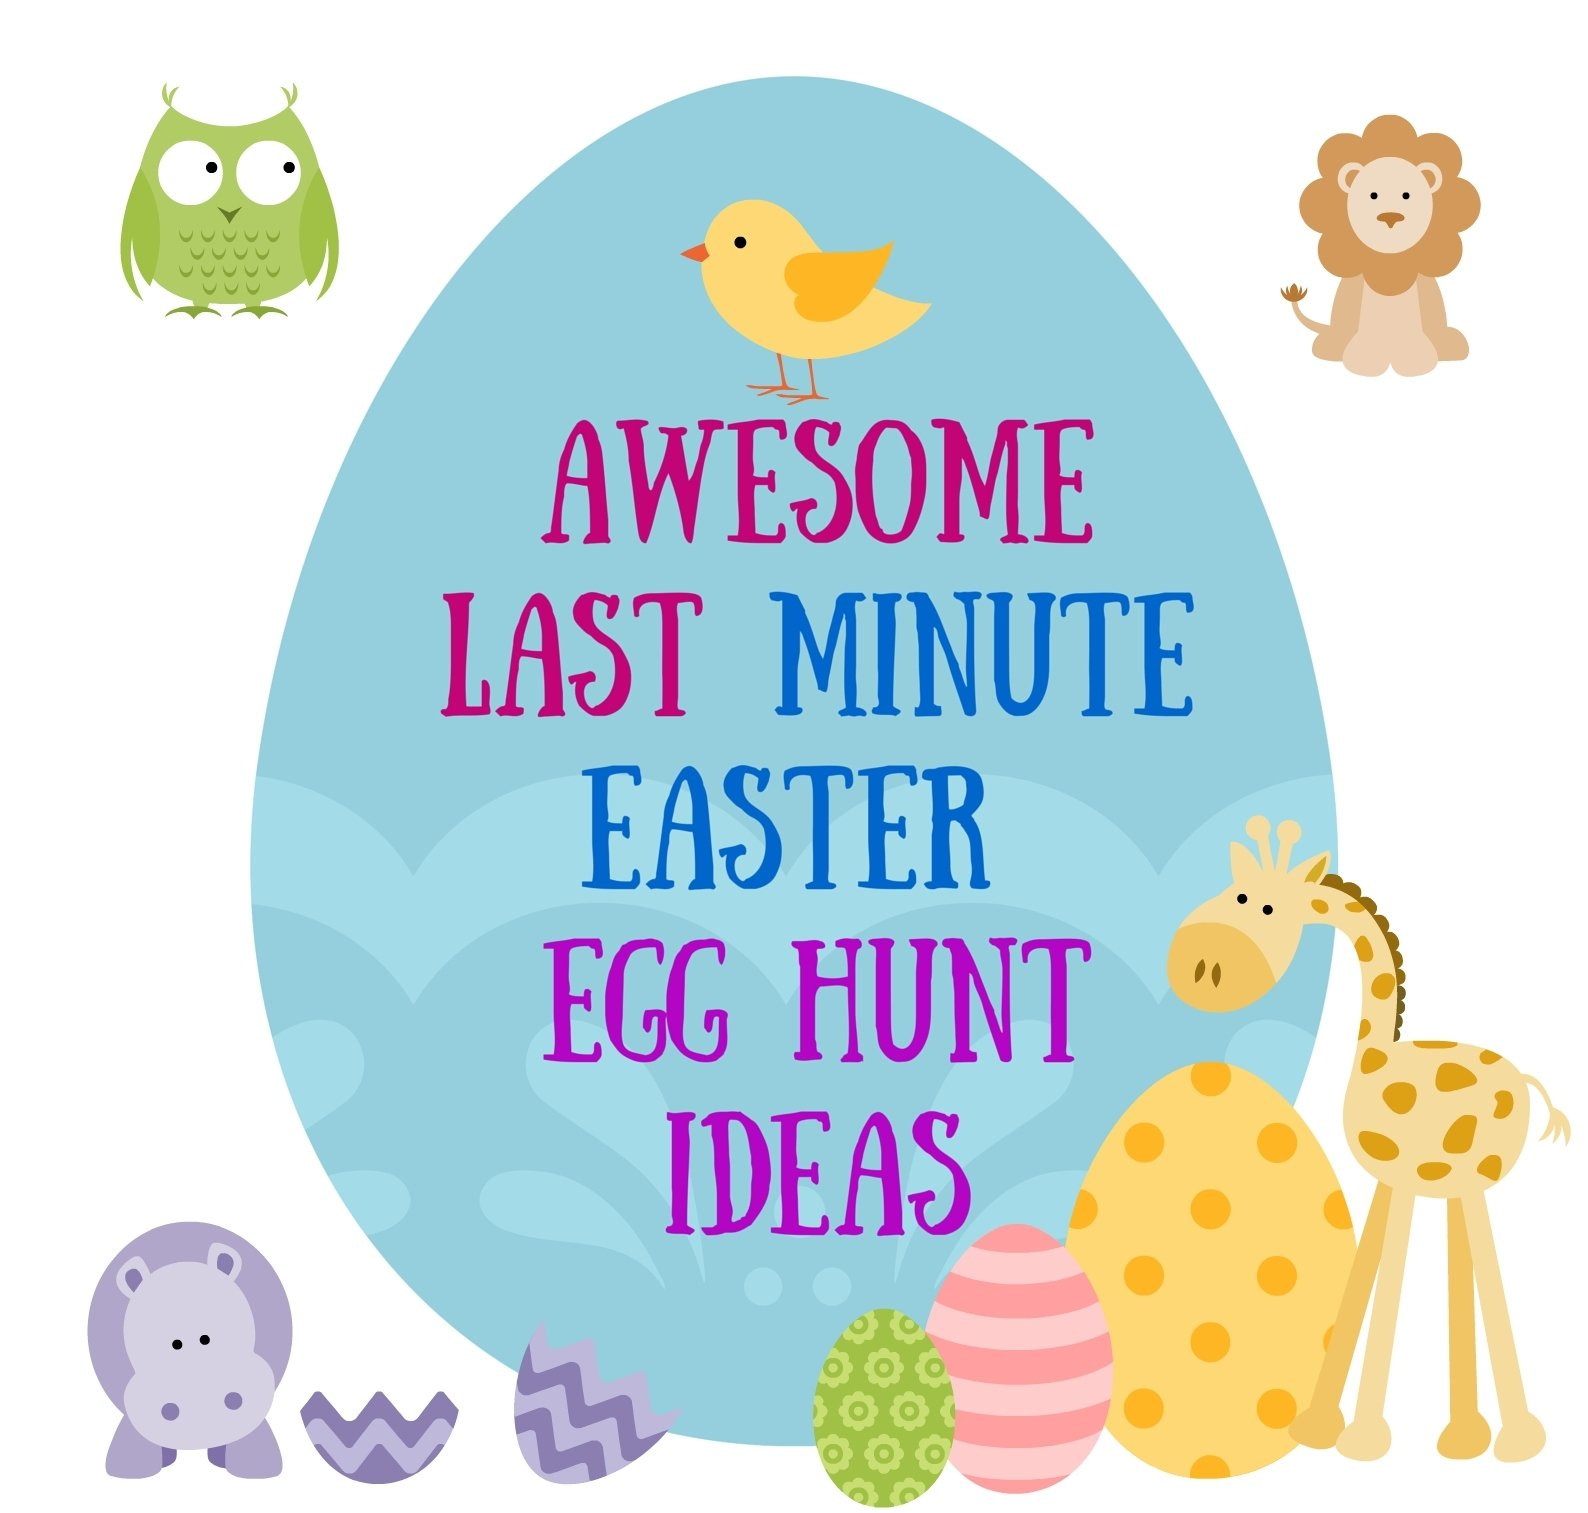 10 Pretty Ideas For Easter Egg Hunt awesome last minute easter egg hunt ideas ask latisha 1 2021